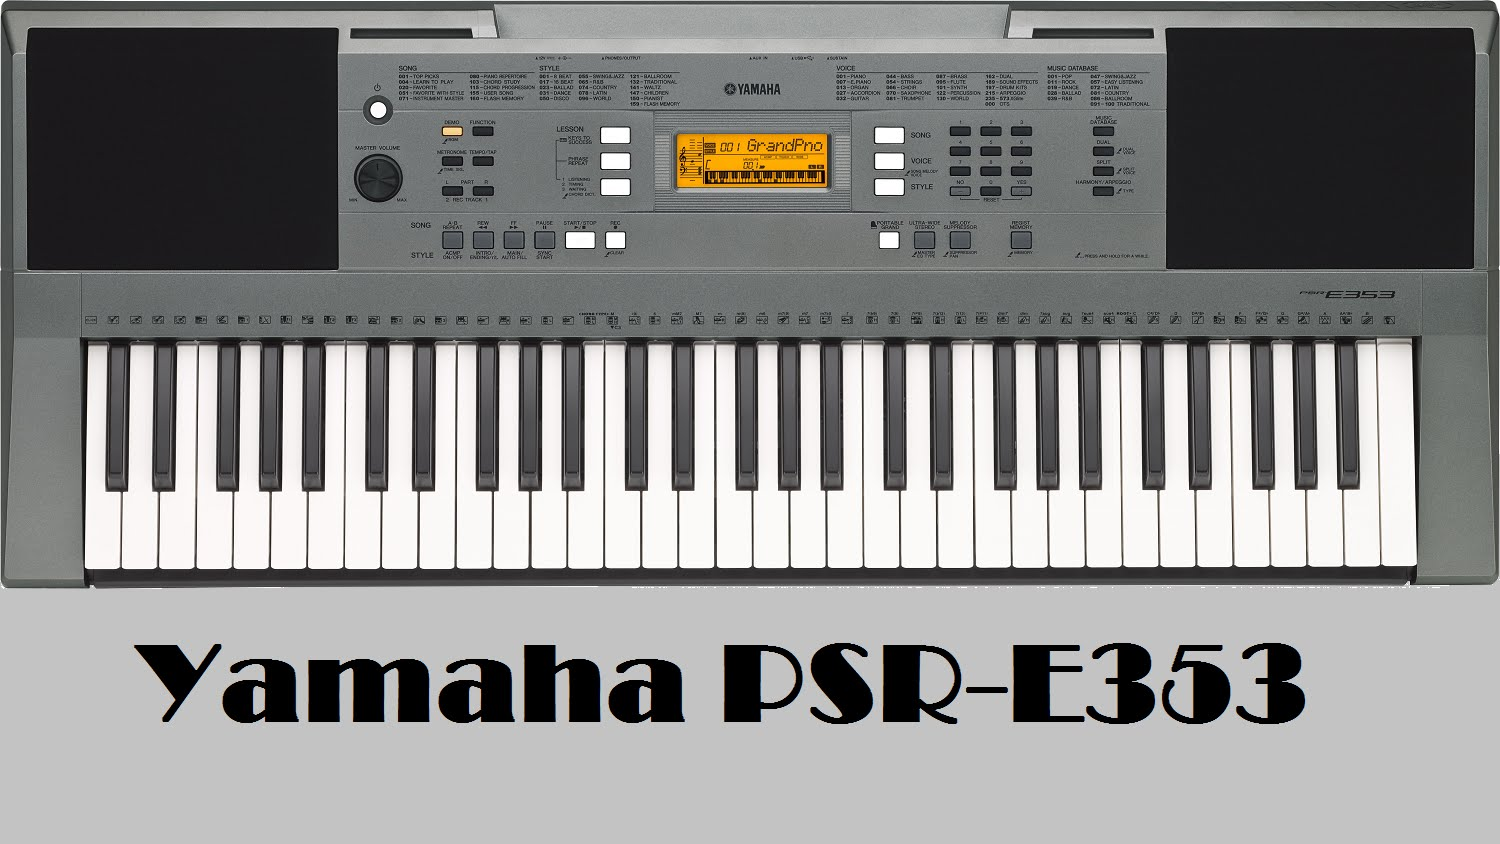 PSR-e353 is Jam-packed full of incredible Instrument Voices, Accompaniment Styles and fun Features. It's an ideal Portable Keyboard for Beginners and Hobbyists, Featuring touch sensitive Keys, On-Board lessons, Computer and Mobile device connectivity and much more. Touch-responsive keyboard for a broad dynamic range A comprehensive library of 573 high quality Voices, including pianos, guitars, drums and orchestral instruments Nine-step lesson function (Yamaha Education Suite) helps beginners learn to play songs Connect your music player, turn the melody down with Melody Suppressor, and jam along with the music! Use Master EQ to adjust the sound Connect to an iPad/iPhone and expand your keyboard with software and apps 150 different arpeggio types provide remarkable expressive power 158 auto accompaniment Styles provide real-time band backing tracks. Music Database makes it easy to choose a musical category The PSR-E353 comes equipped with easy-to-use onboard lesson Functions for Beginning players, and Comes with a touch-Responsive Keyboard that will satisfy more experienced musicians. In Addition to enjoying comprehensive library of 574  instrument Voices from around the world, you can also connect an Audio Player and play along with your Favorite songs, or connect to IPhone/iPad or your PC to use with a variety of different Apps and Software.